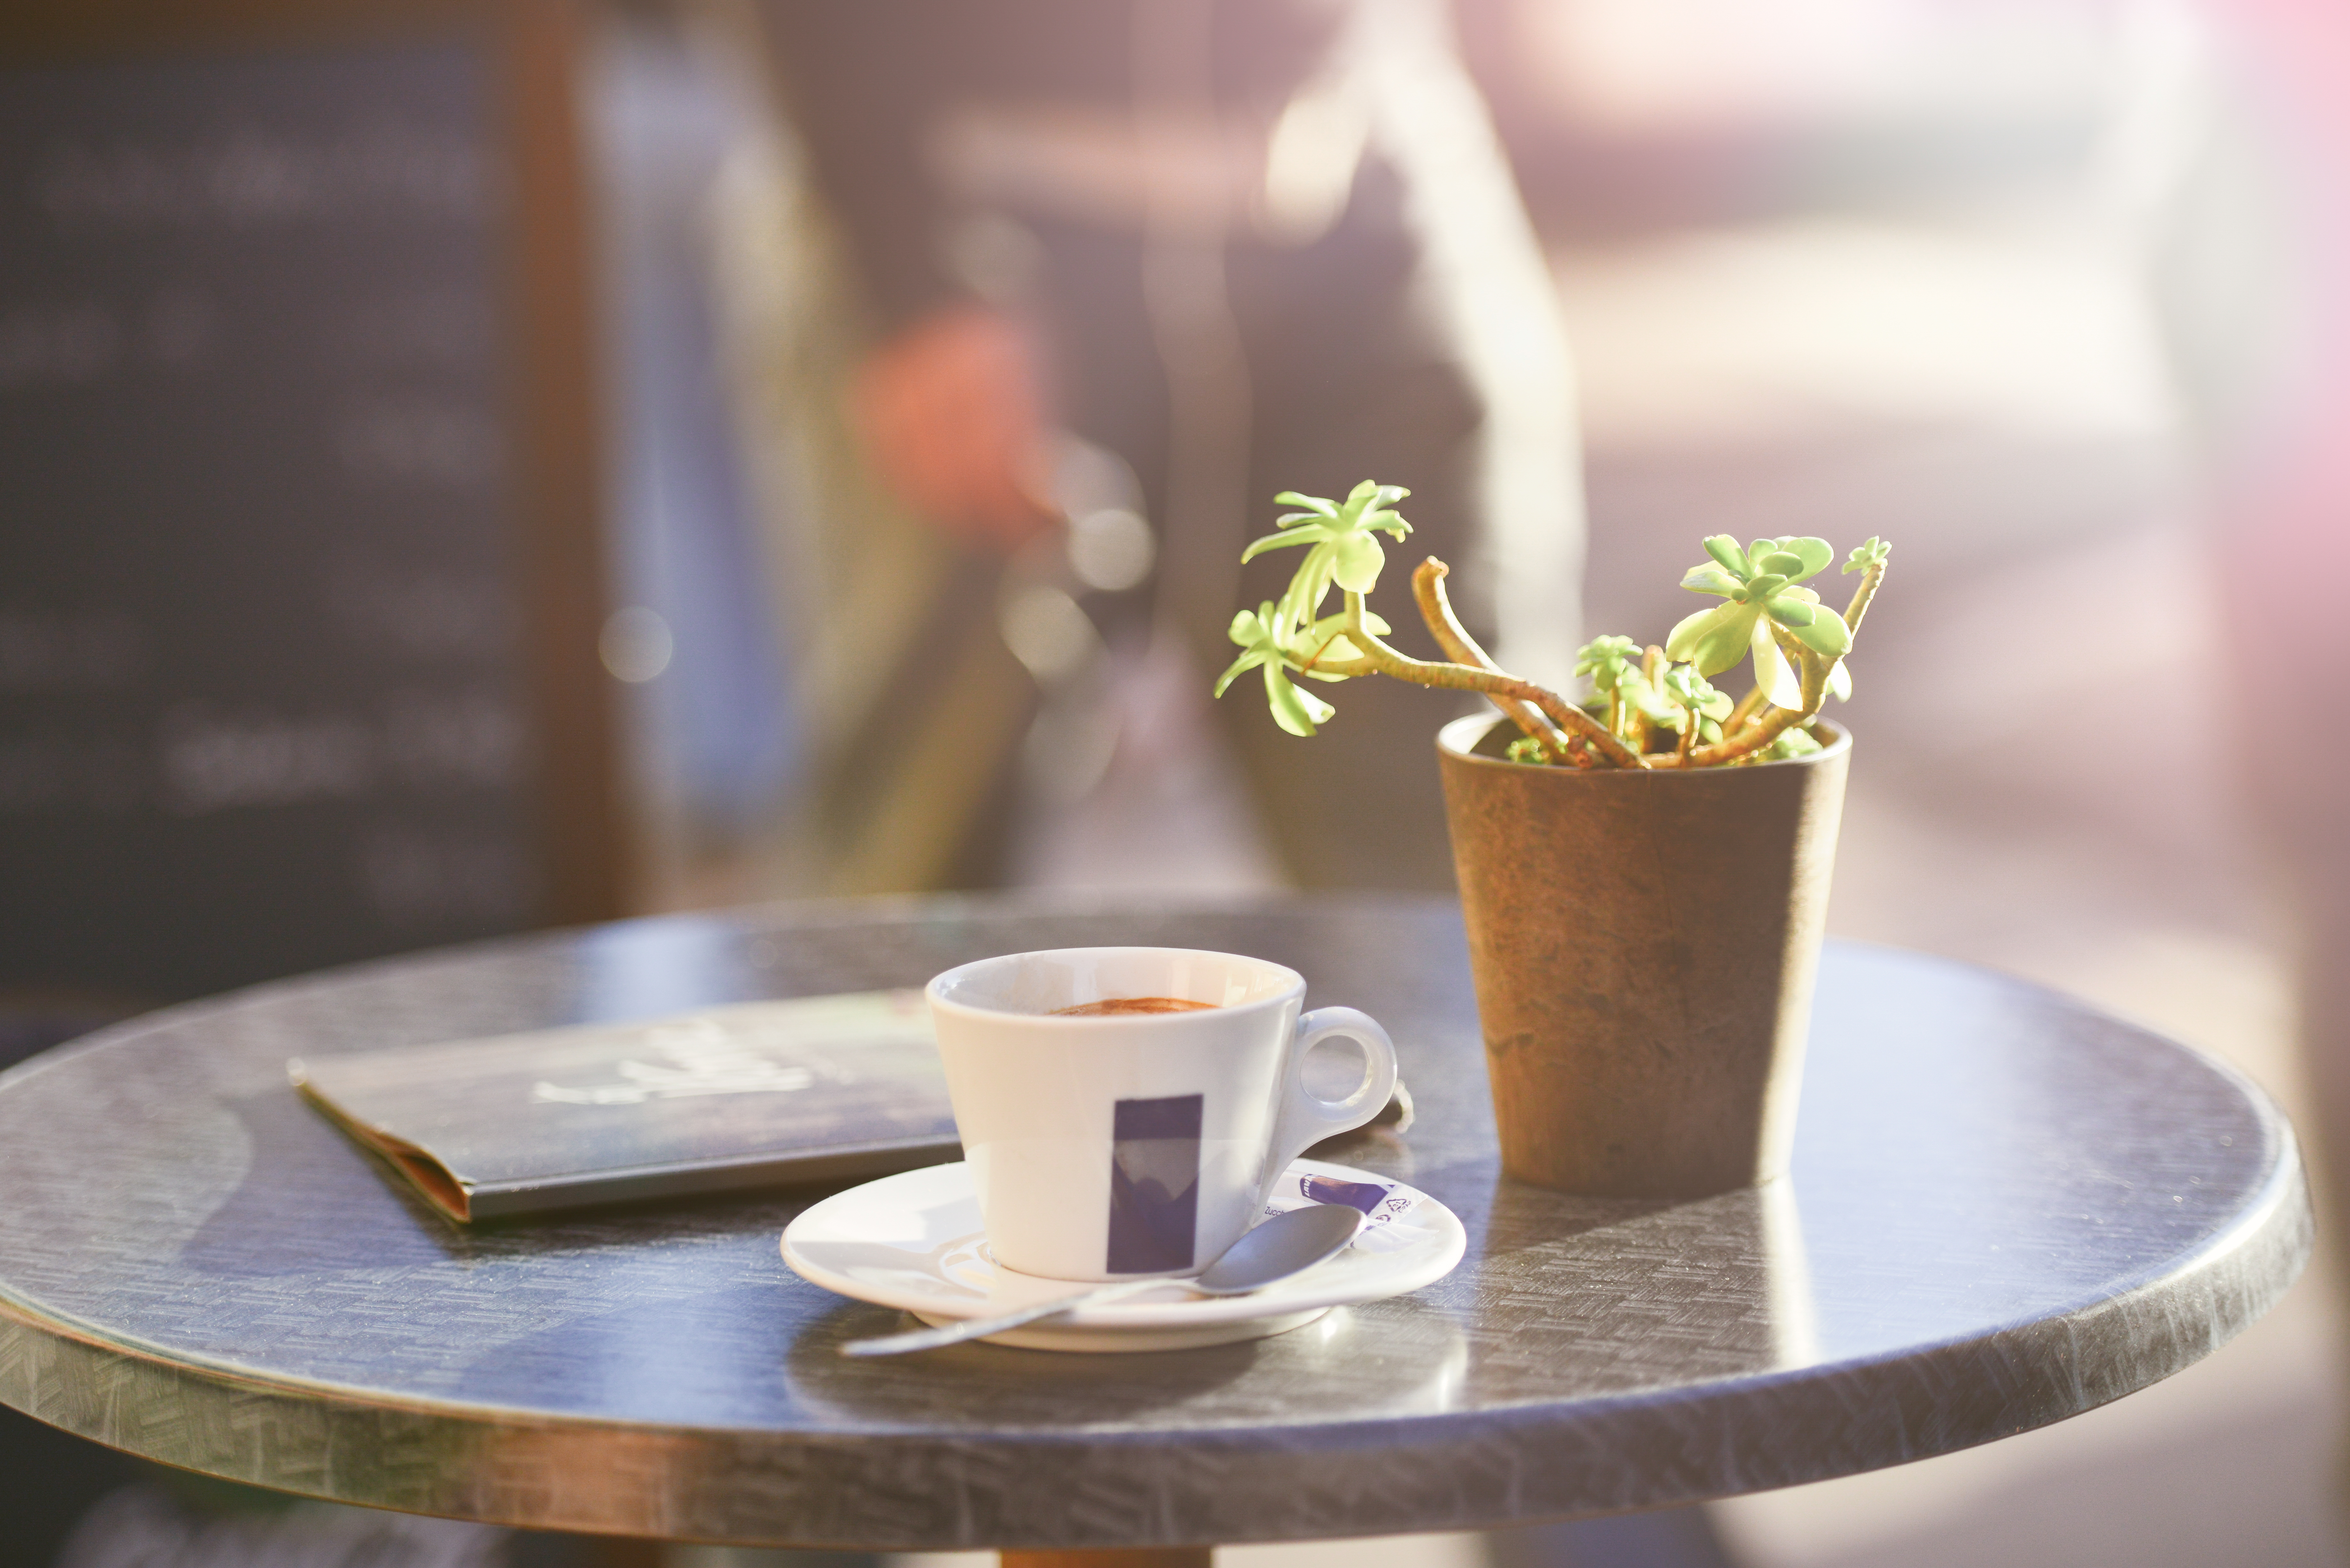 https://gathermoments.files.wordpress.com/2015/01/morning-coffee-on-outside-cafe-table-with-plant-menu.jpg